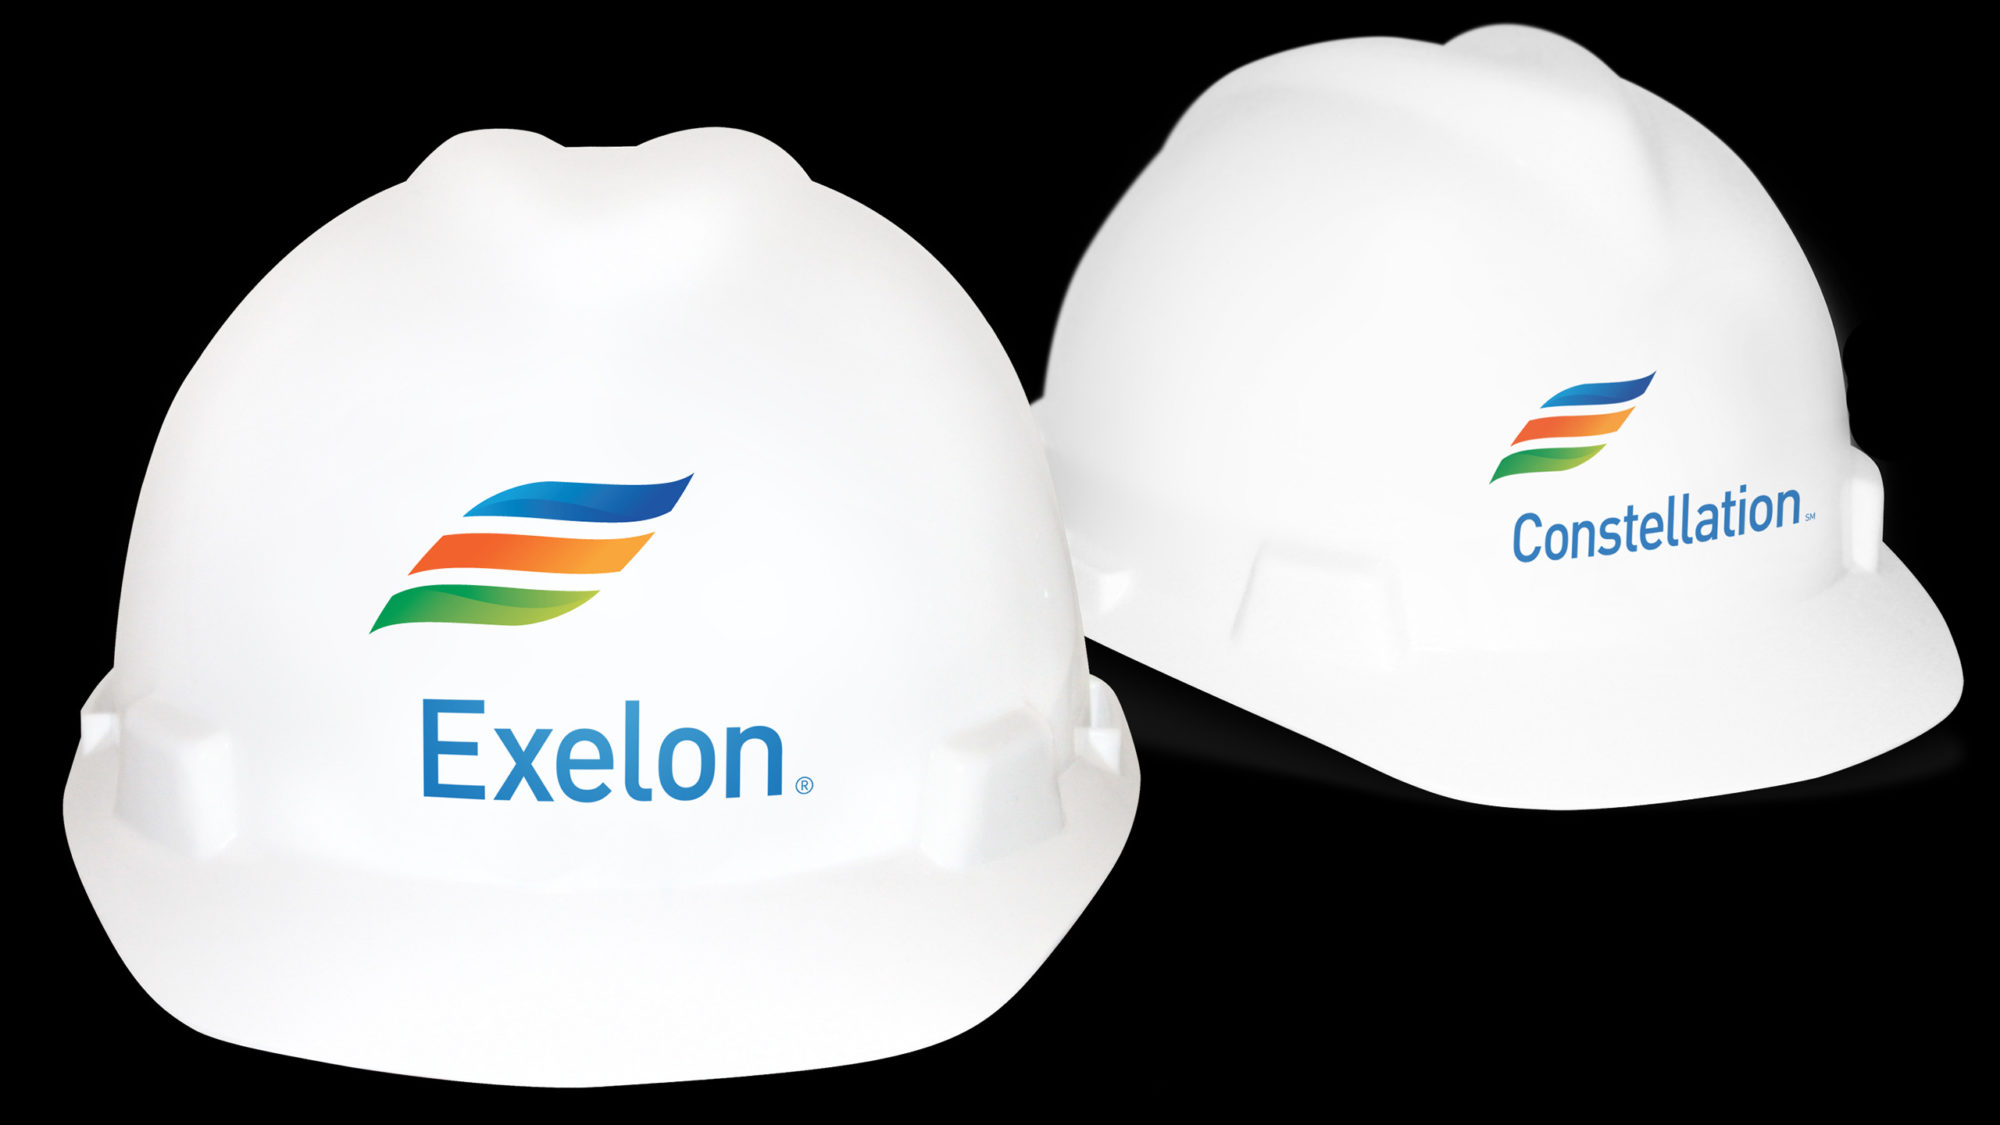 Exelon corporate